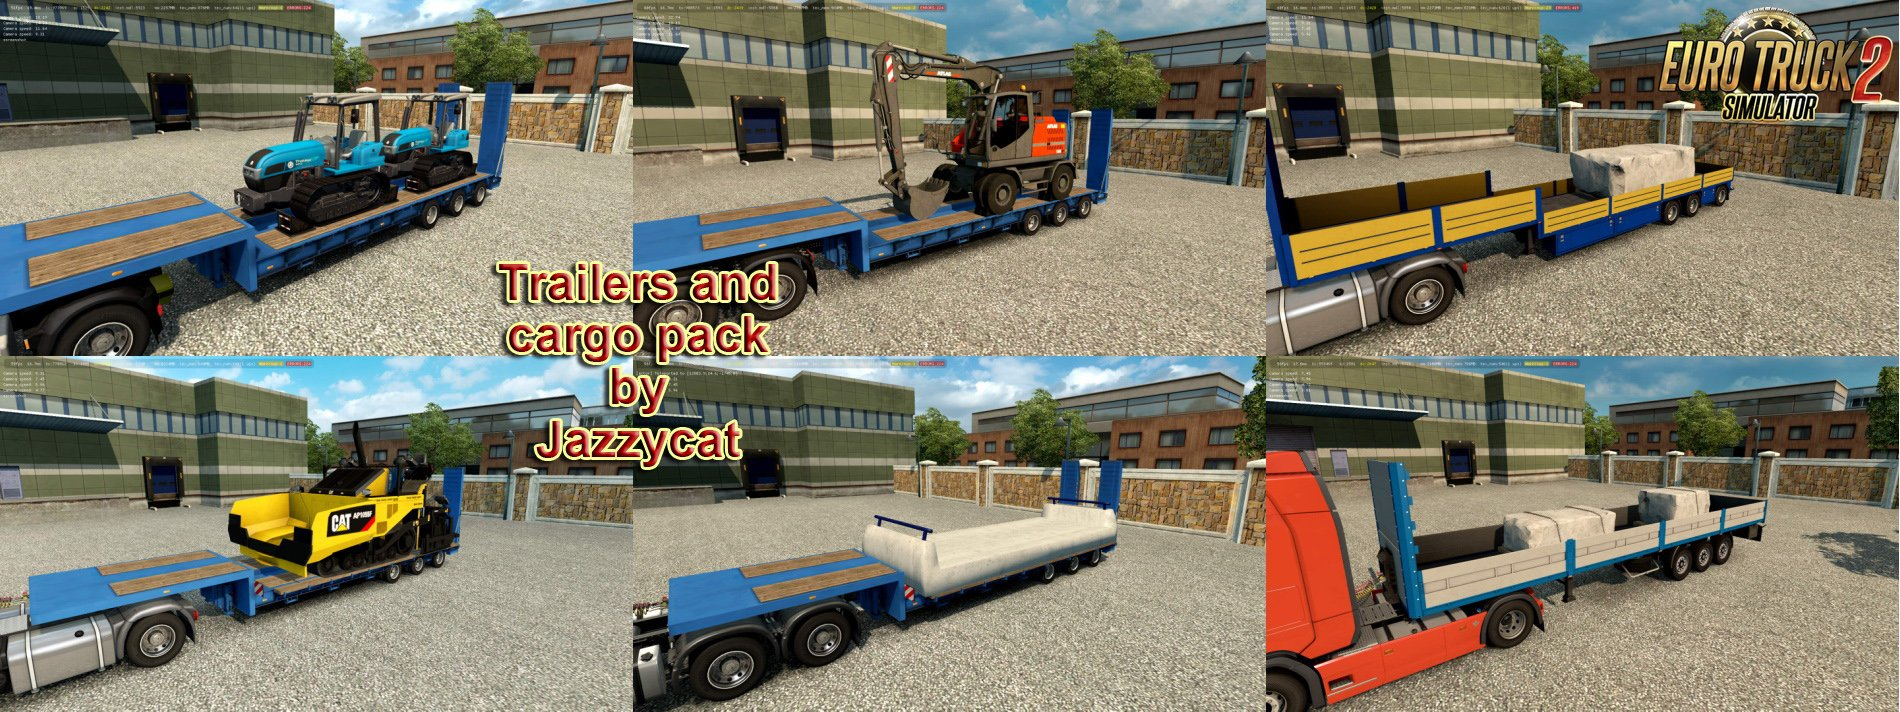 Trailers and Cargo Pack v7.1 by Jazzycat